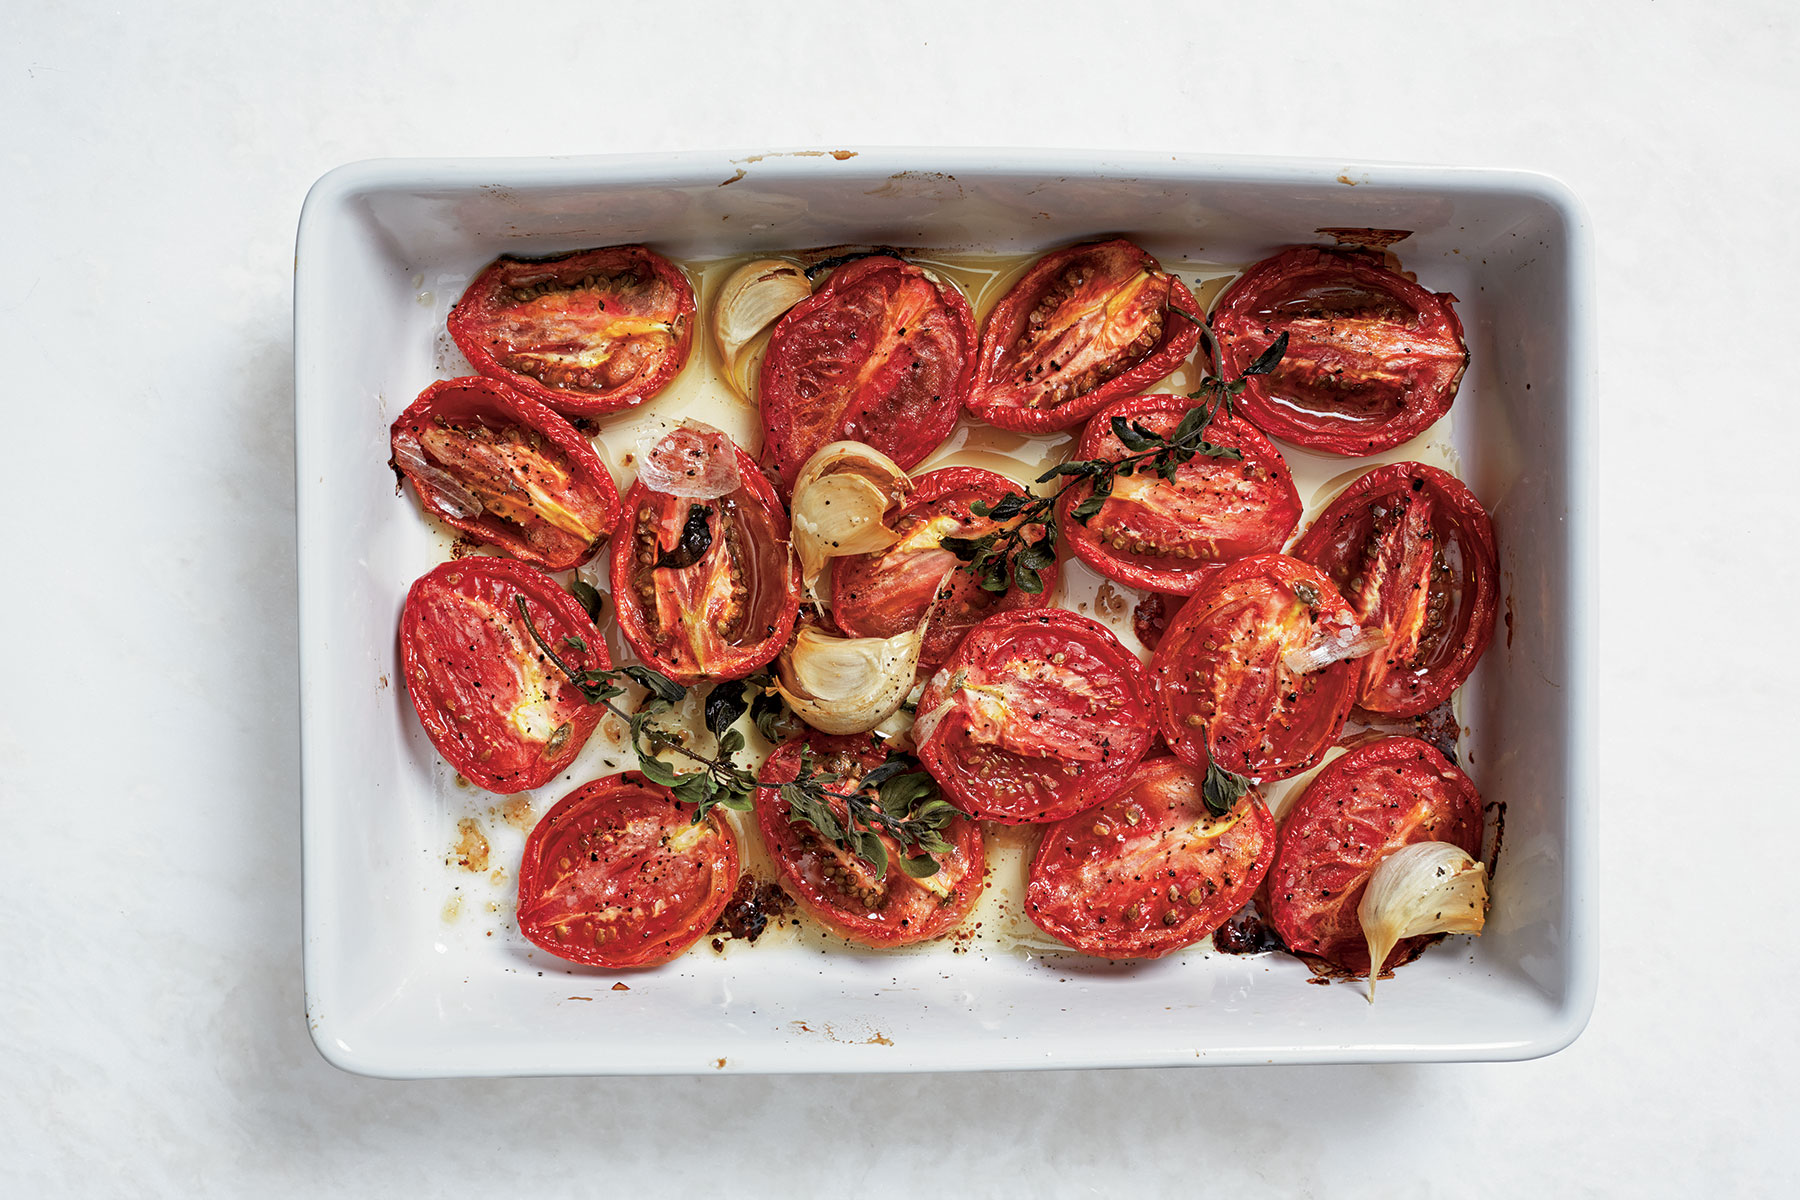 Clone of Slow-Roasted Plum Tomatoes with Garlic and Oregano